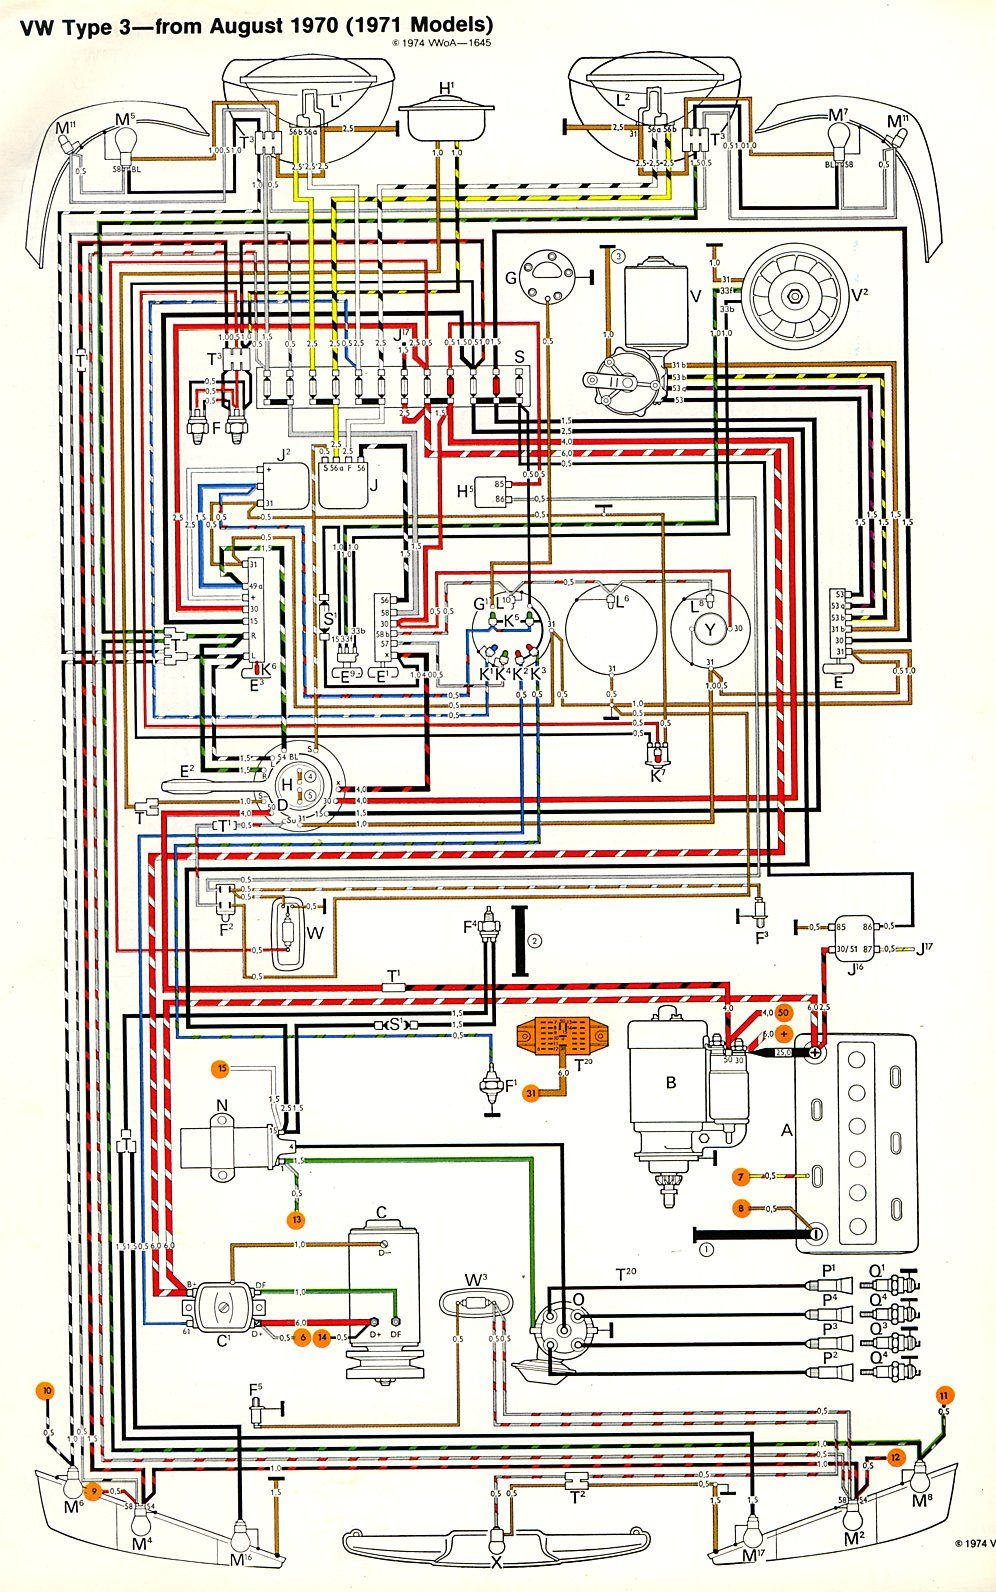 1971 volkswagen beetle wiring diagram 1971 type iii wiring diagram | volkswagens | vw beetles ... 1971 volkswagen bug wiring diagram